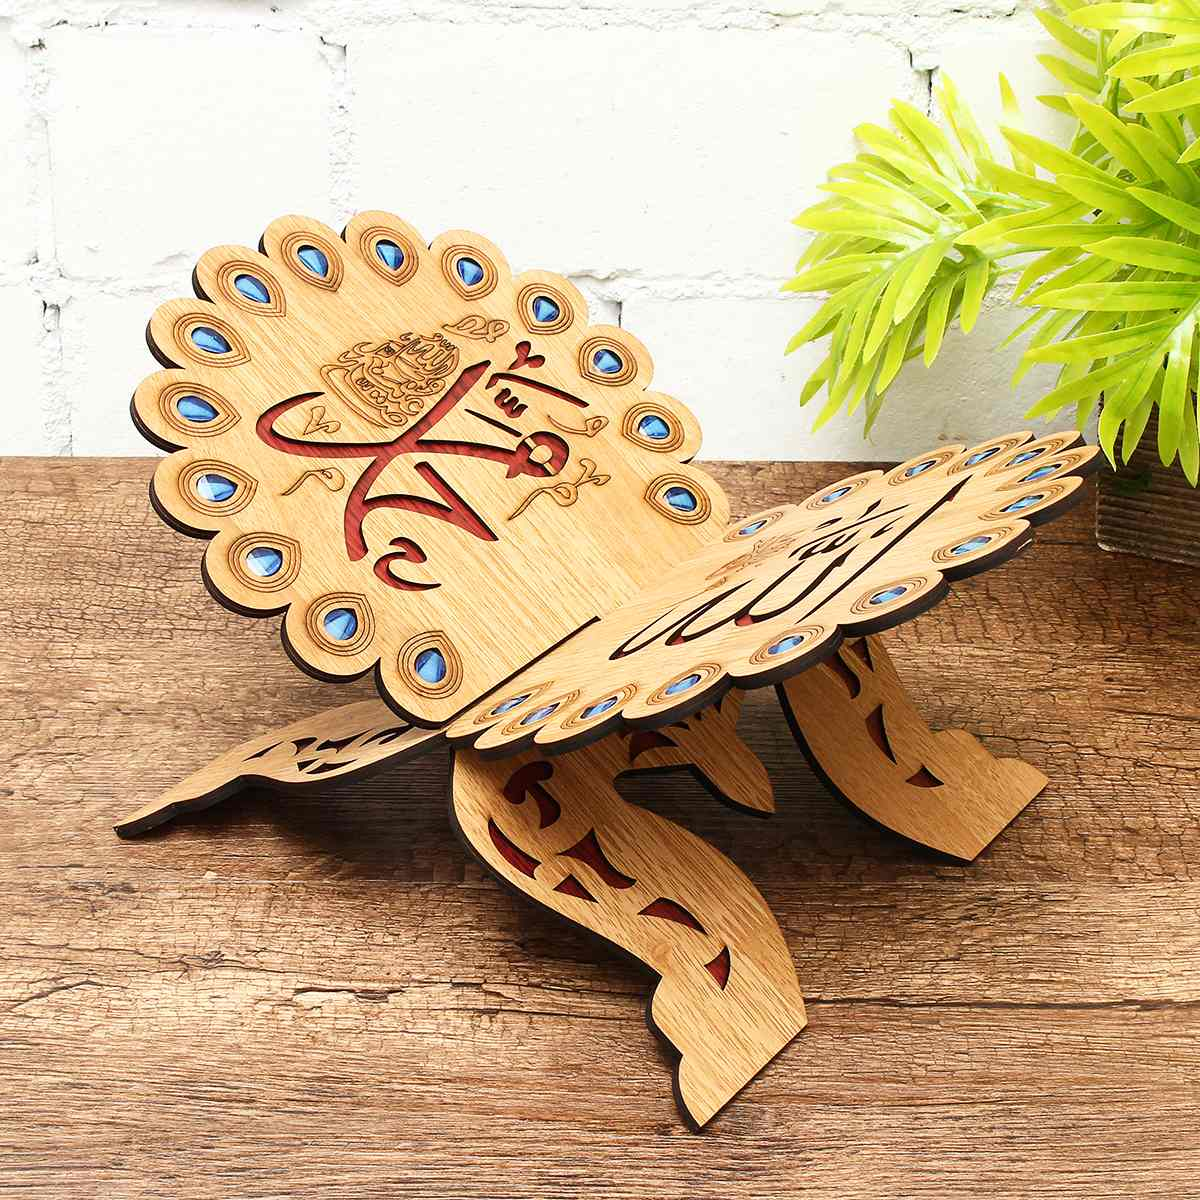 33*23/30*20cm Removable Wooden Book Stand Holder Quran Muslim Ramadan Allah Islamic Gift Handmade Wood Decor Lightweight Sale Price Bookends